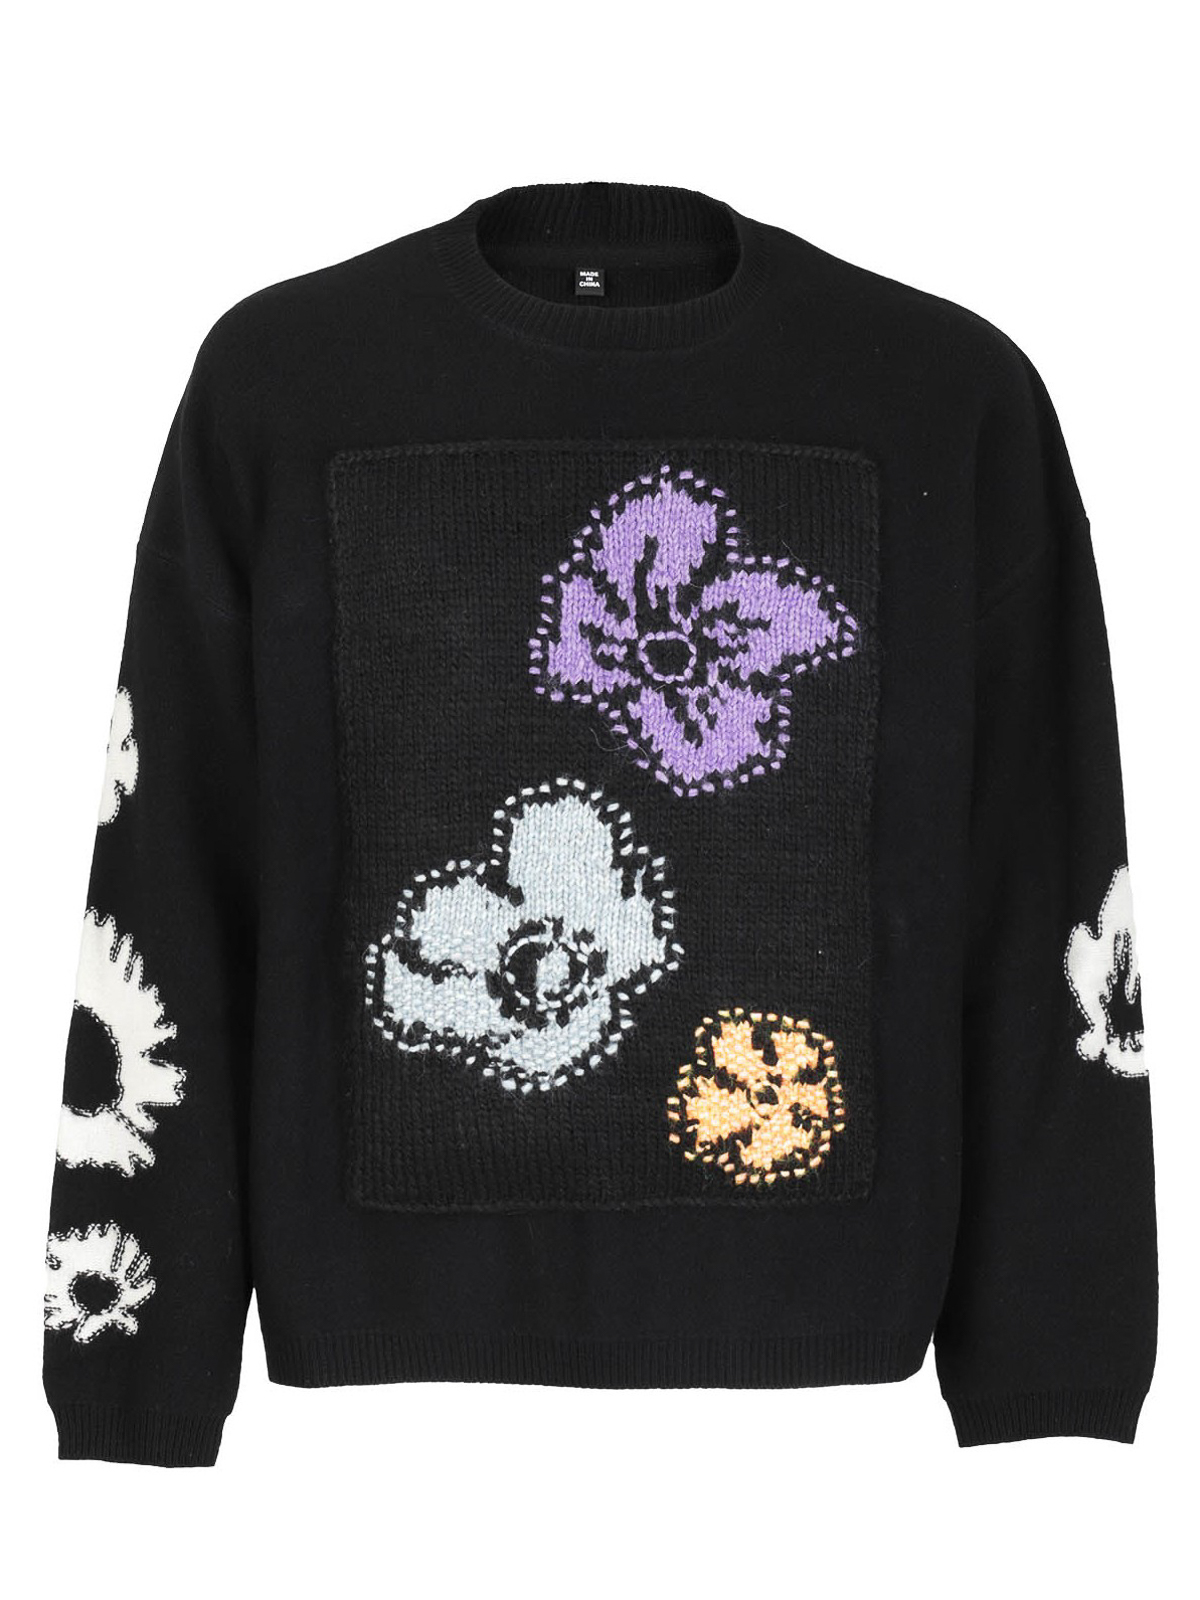 Alexander Mcqueen FLORAL EMBROIDERY CREW NECK